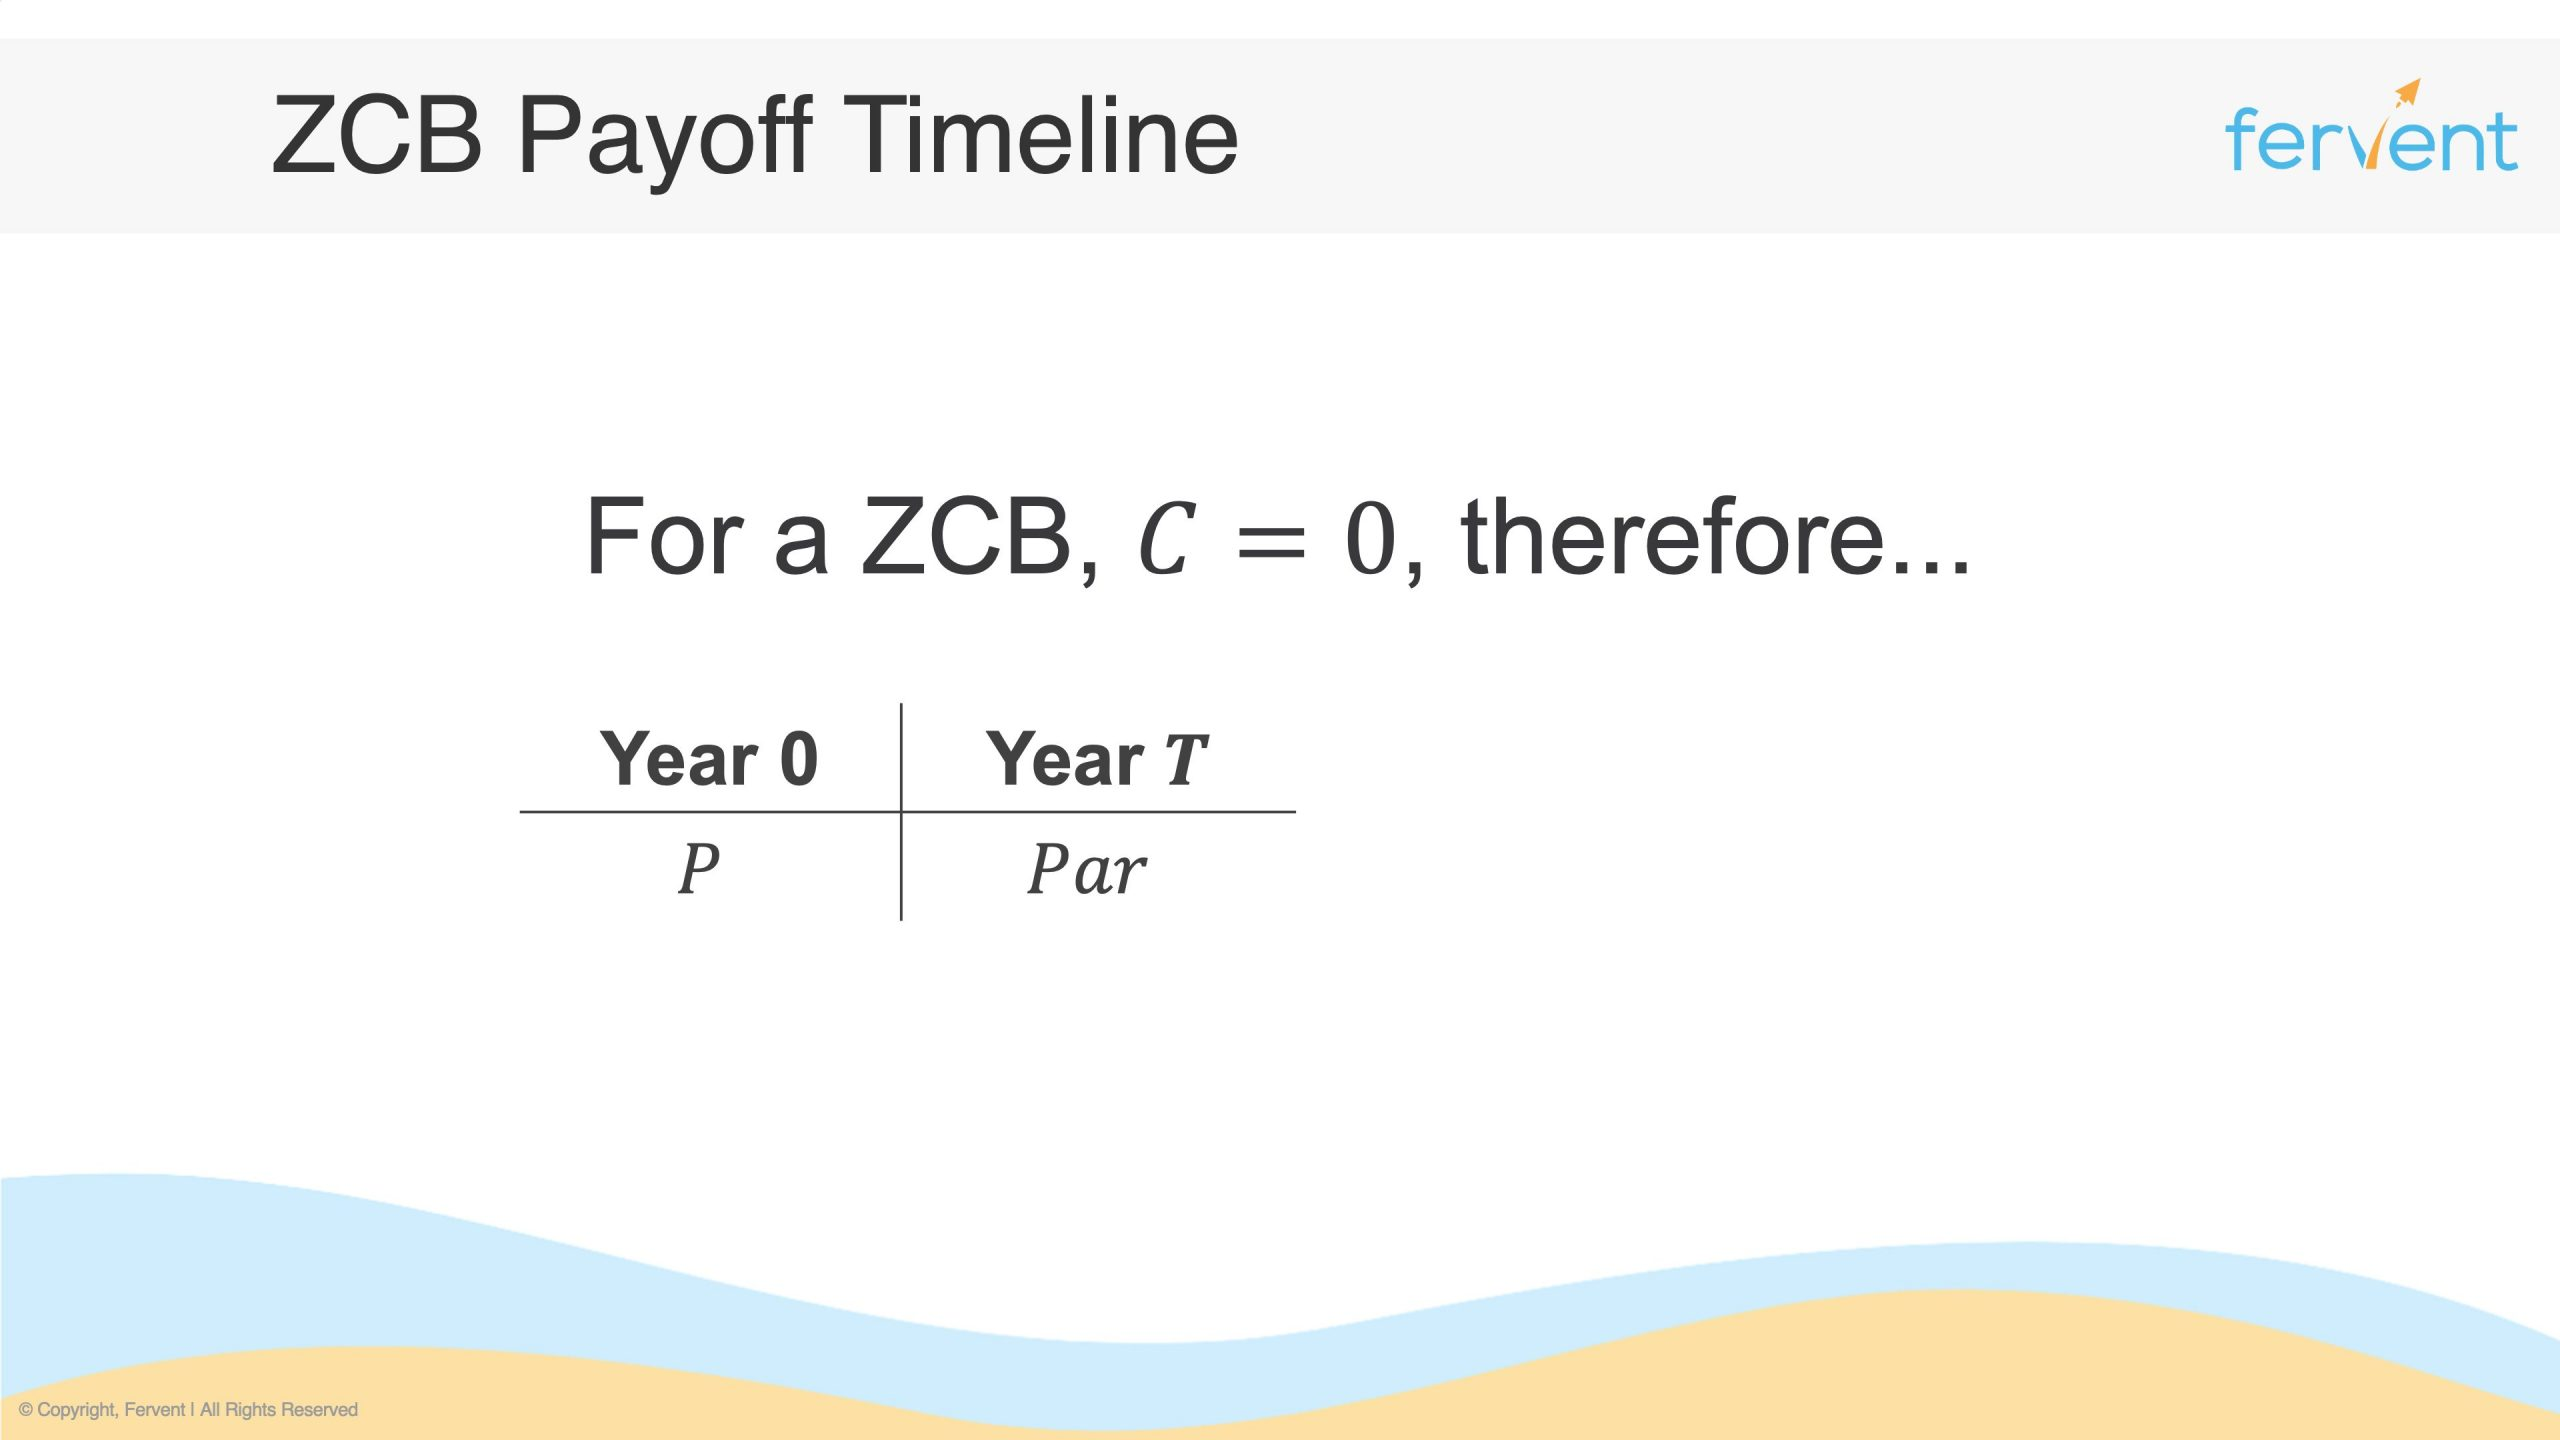 Slide showcasing a ZCB payoff timeline